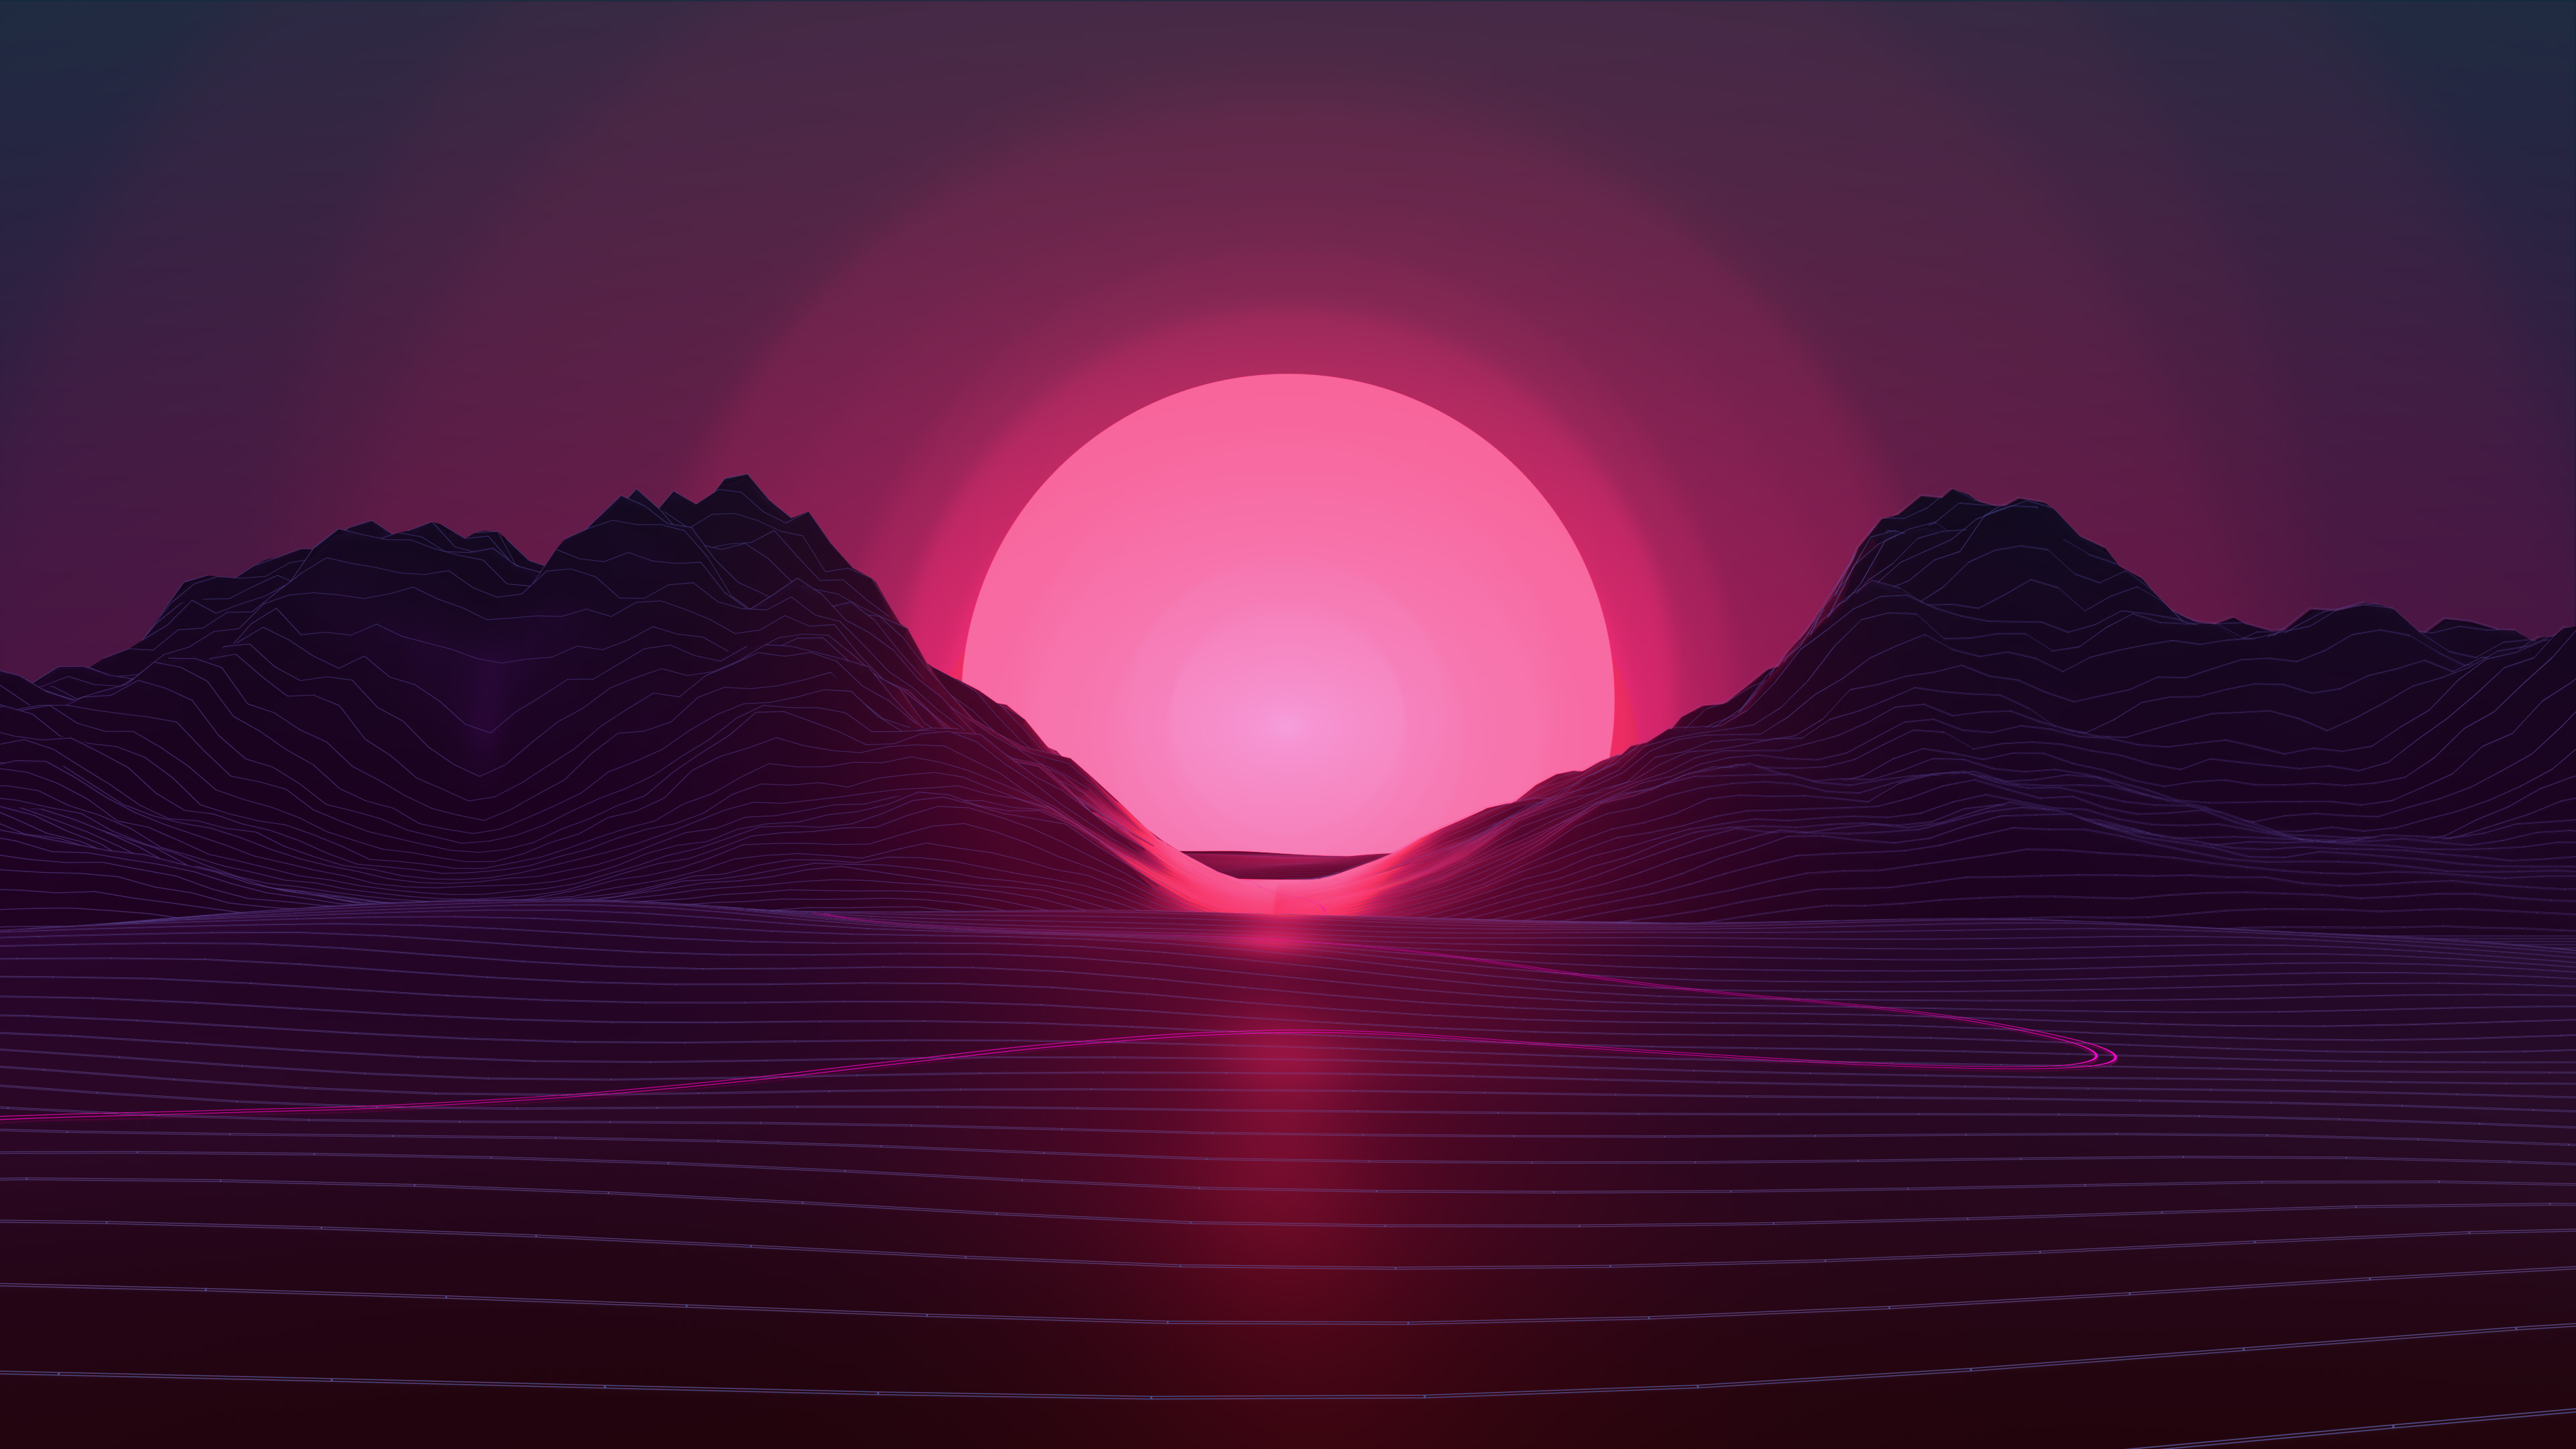 120 Retro Wave Hd Wallpapers Background Images Wallpaper Abyss